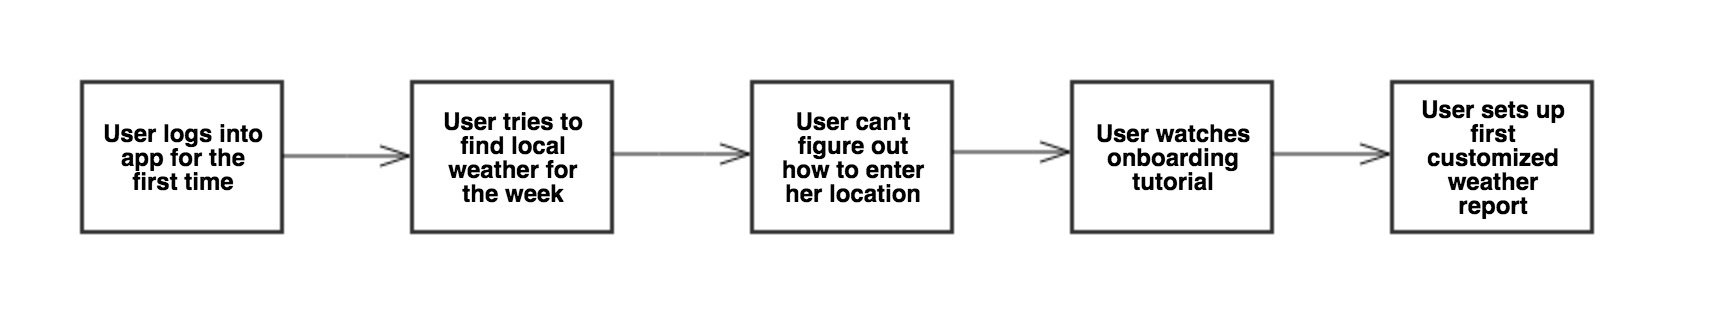 A flowchart for a UX journey map. The user logs into the app for the first time, tries to find local weather for the week, can't figure out how to enter her location, watches an onboarding tutorial, and finally sets up first customized weather report. User journeymap example. Example of UX map.